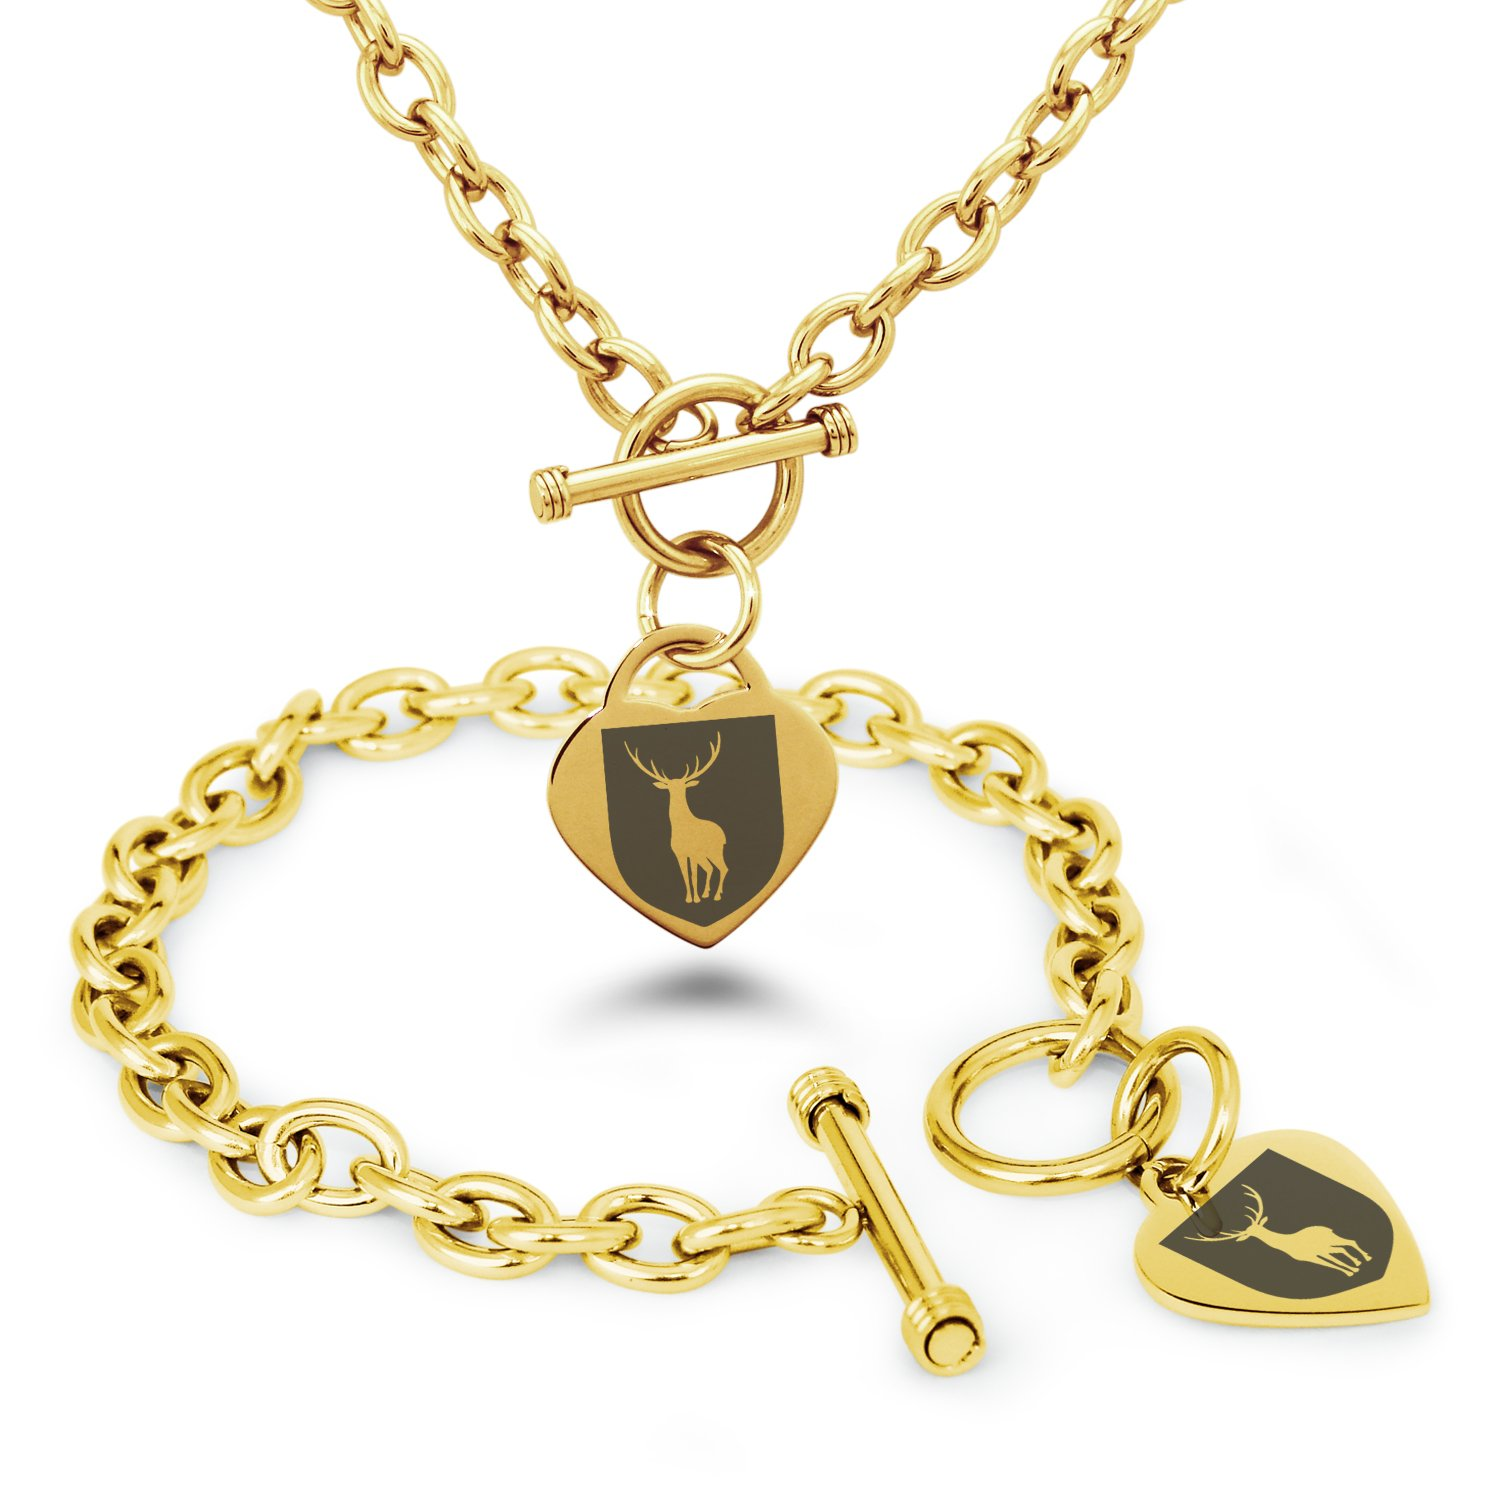 Tioneer Gold Plated Stainless Steel Stag Purity Coat of Arms Shield Symbols Heart Charm, Bracelet & Necklace Set